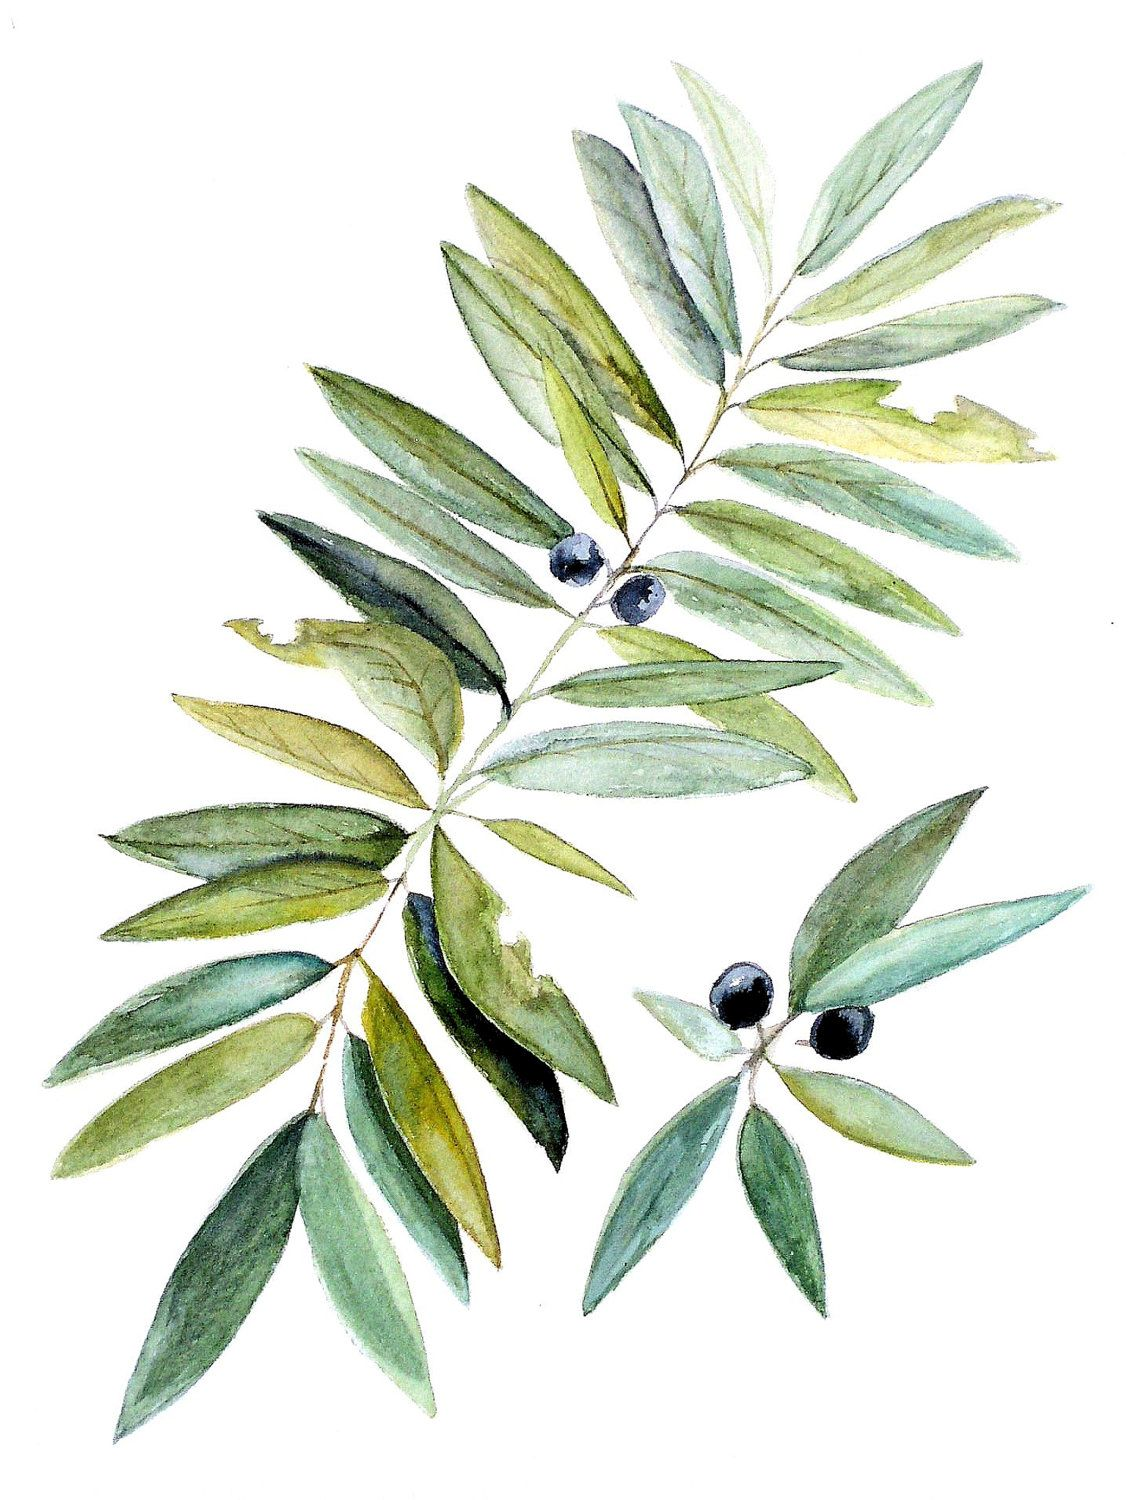 Original watercolor art for sale - Watercolor Painting Botanical Leaves And Berries Natural History Original Art By Laurie Rohner Via Etsy